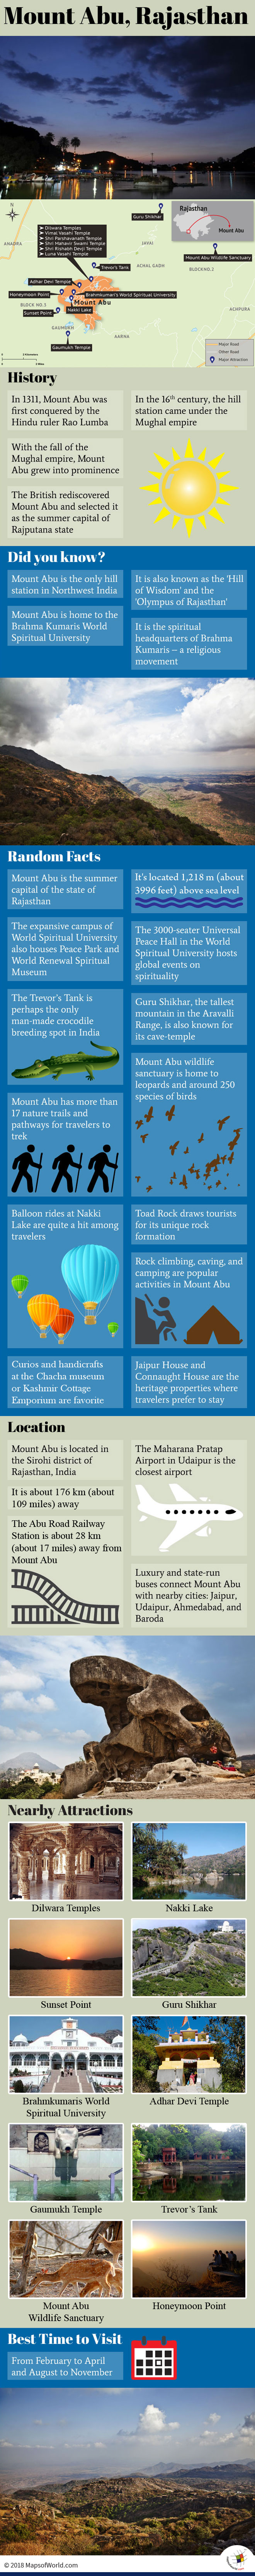 Infographic Depicting Mount Abu Tourist Attractions